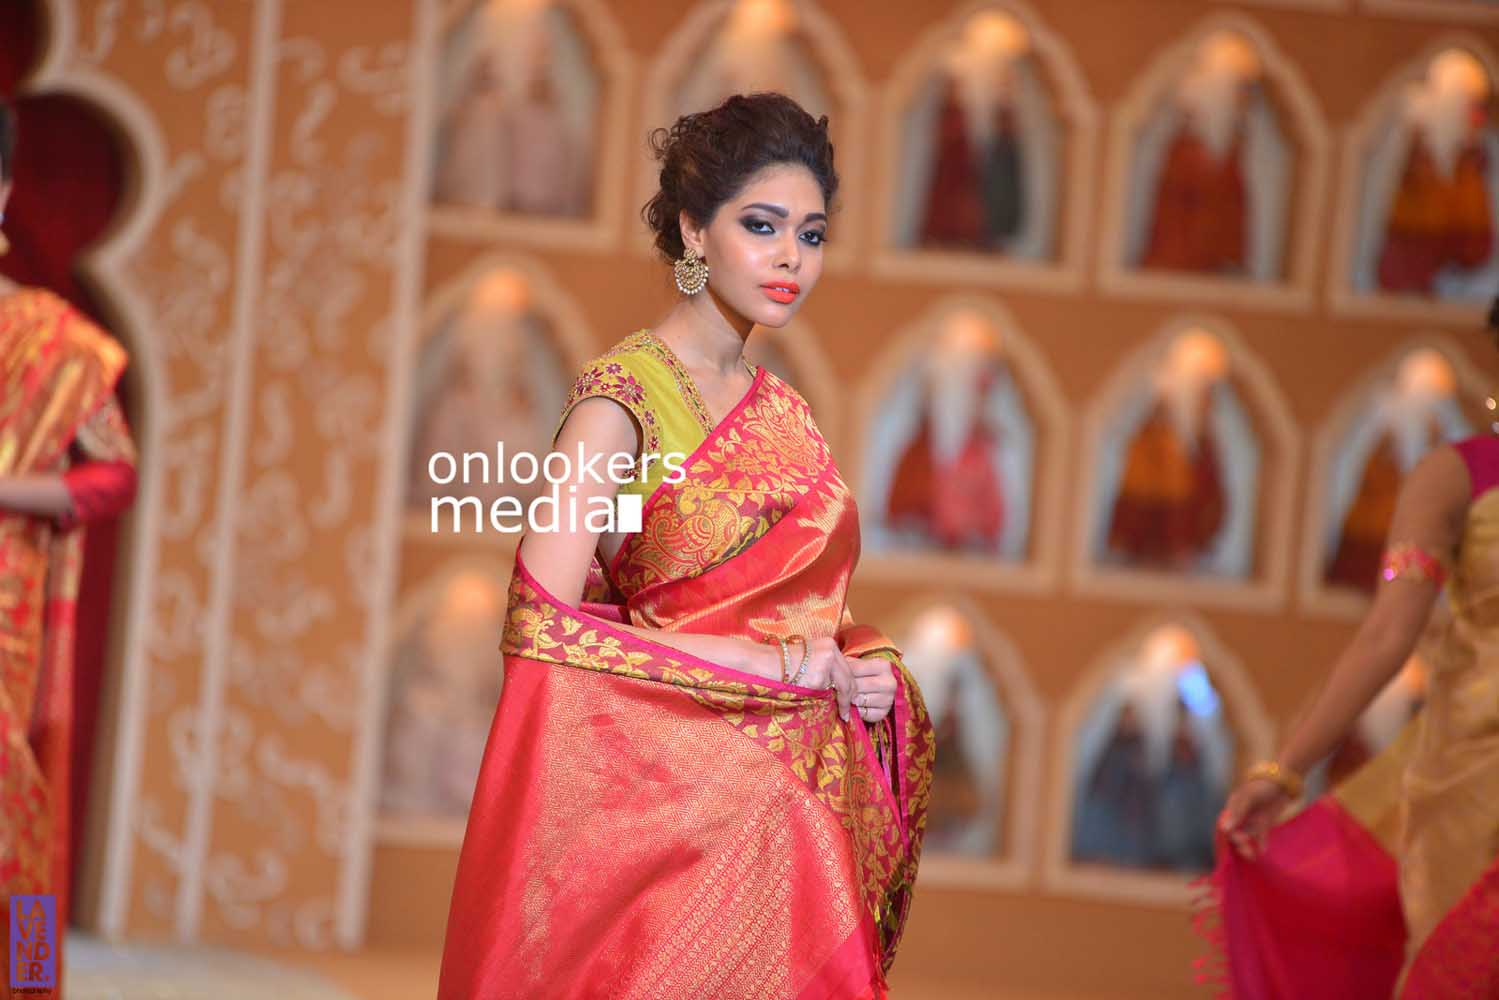 http://onlookersmedia.in/wp-content/uploads/2016/10/Beena-Kannan-Bridal-Show-2016-Stills-Photos-Seematti-204.jpg